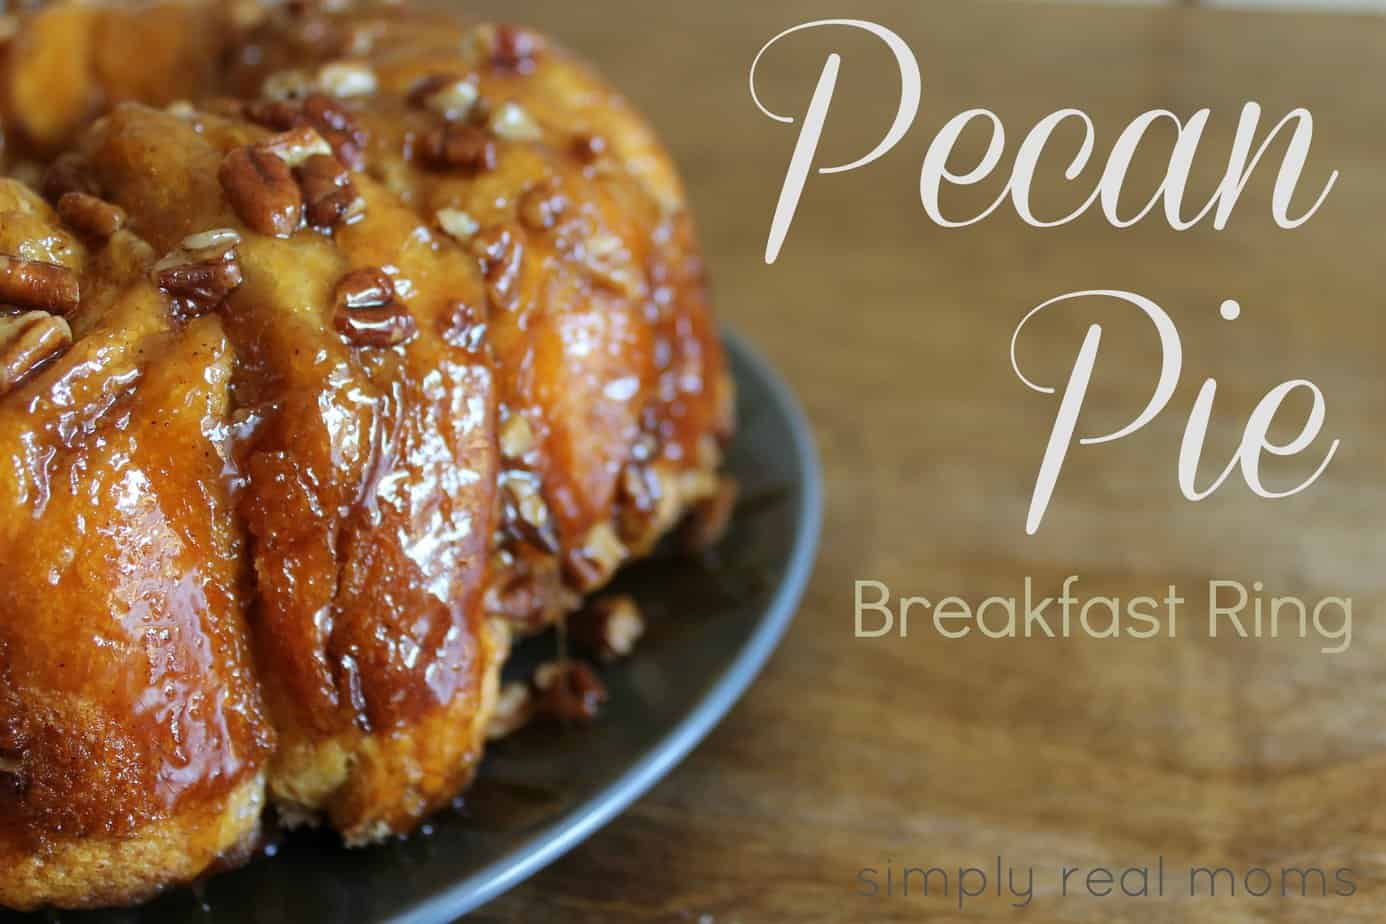 Pecan Pie Breakfast Ring 1